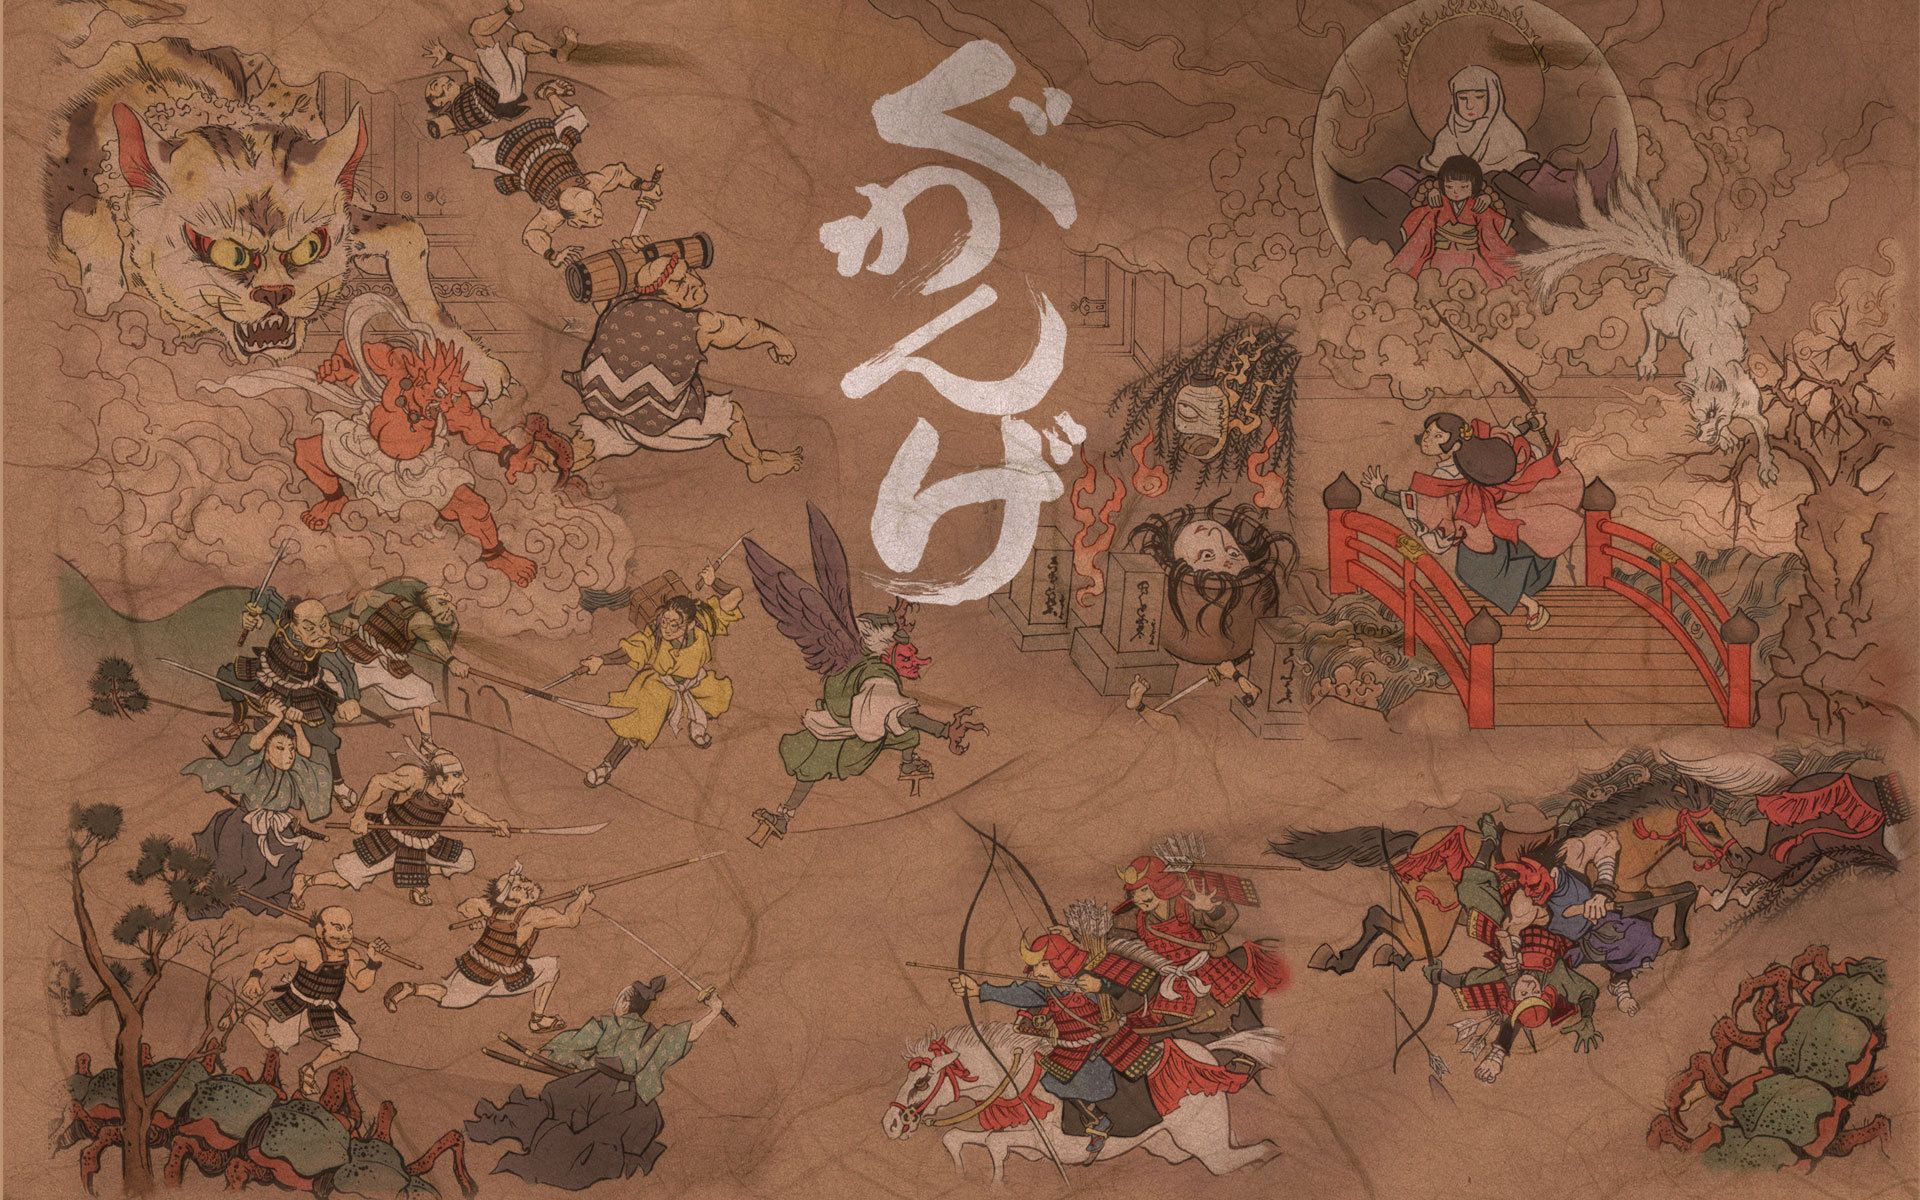 Image detail for Japanese Art Wallpapers, Wall Art, Japan